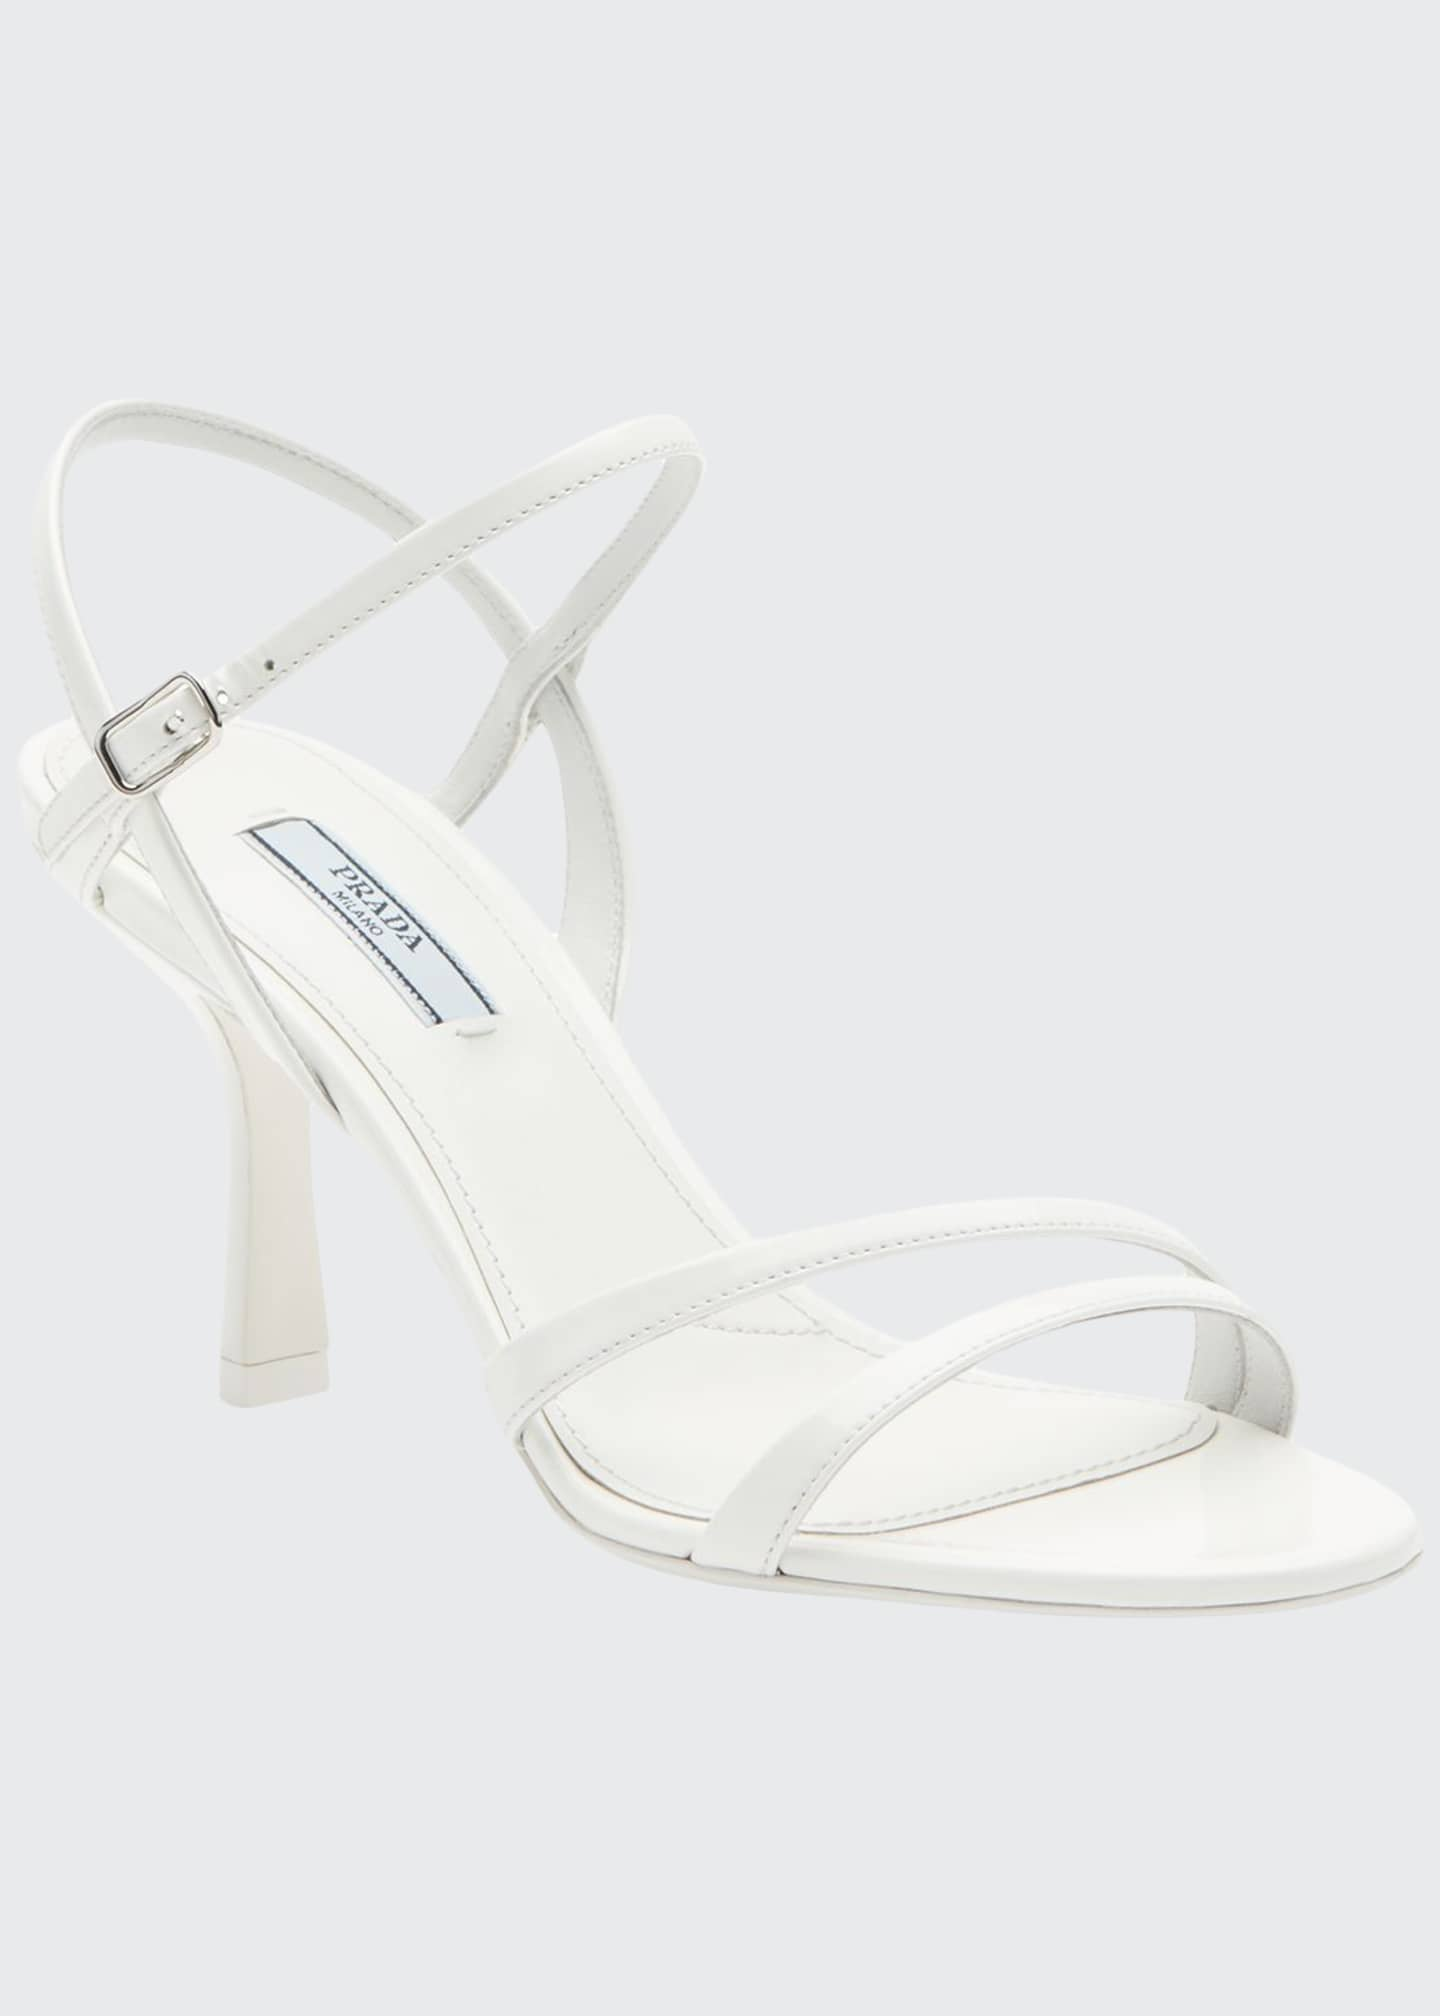 Prada Patent Strappy Ankle Sandals